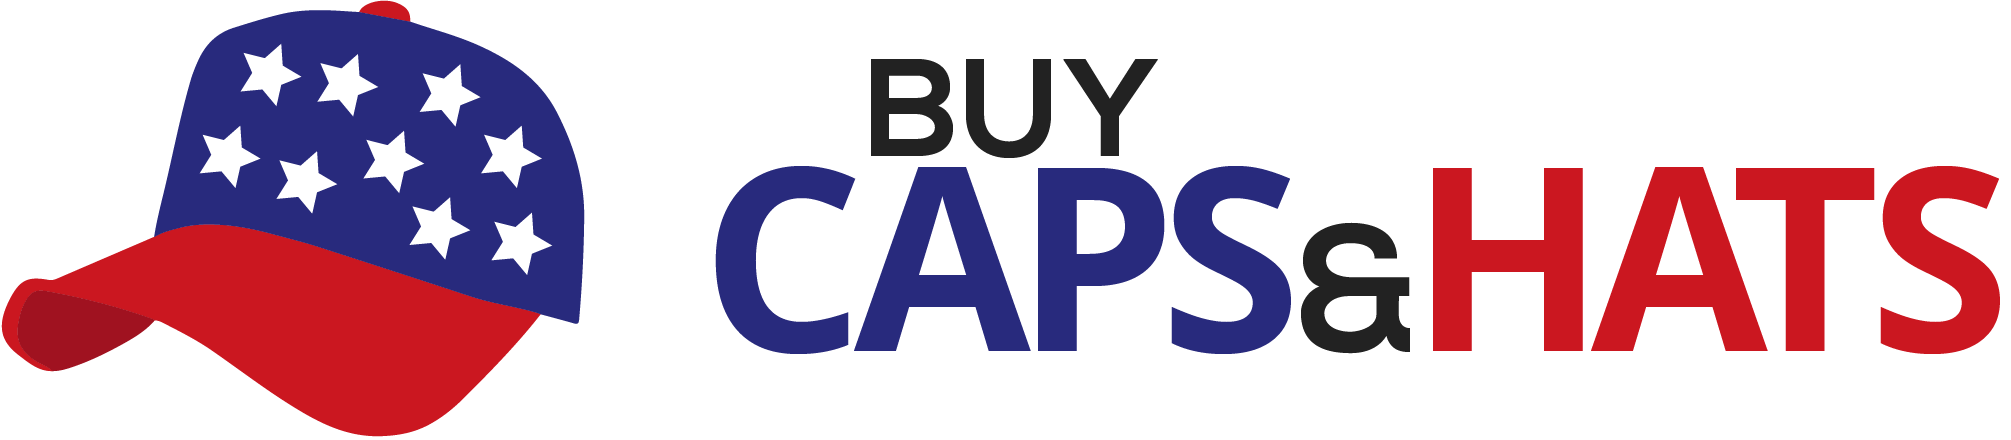 Buy Caps and Hats